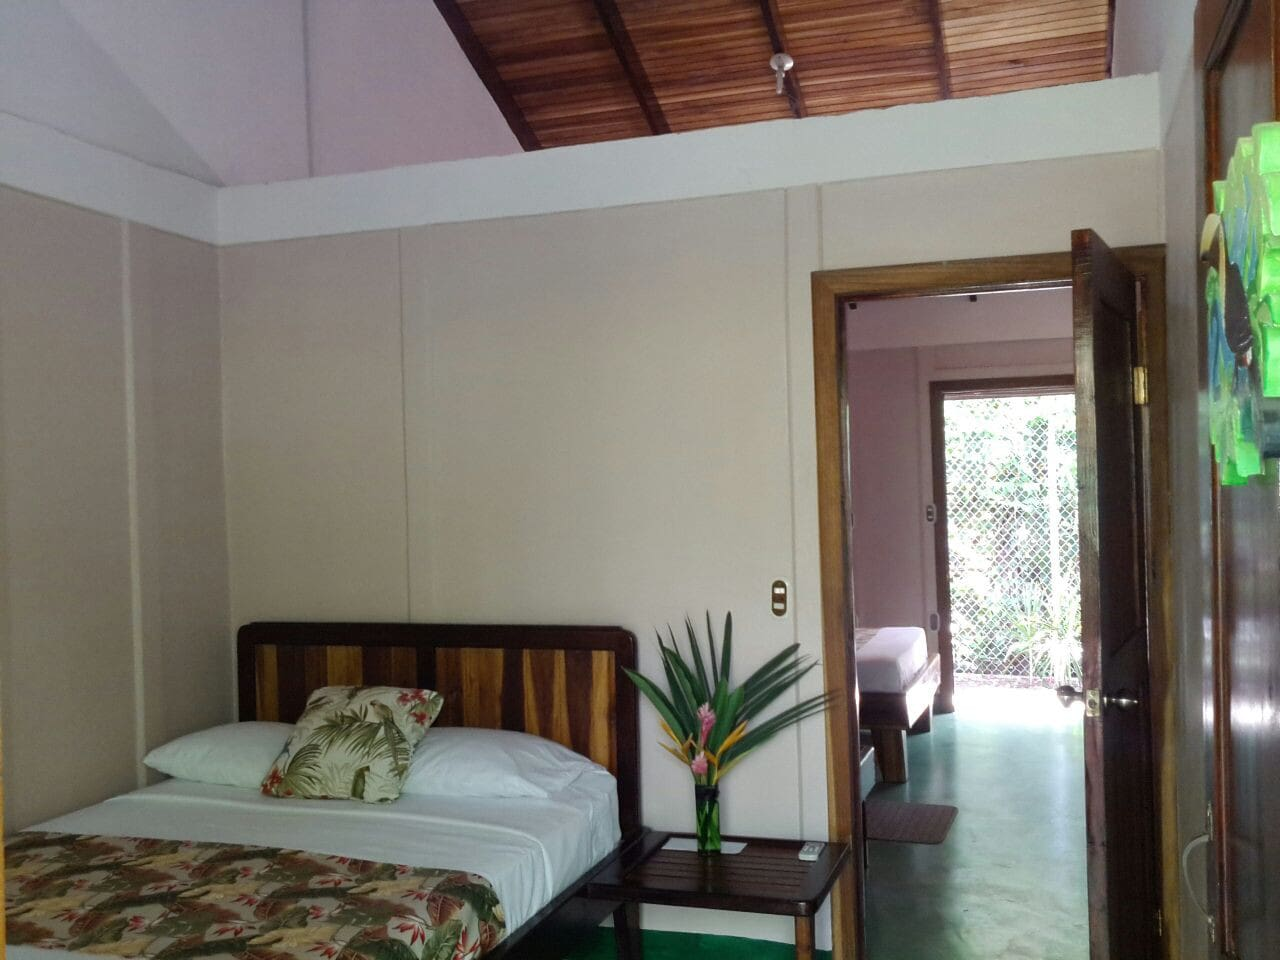 cabinas tropicales deluxe suite bed and breakfasts for rent in